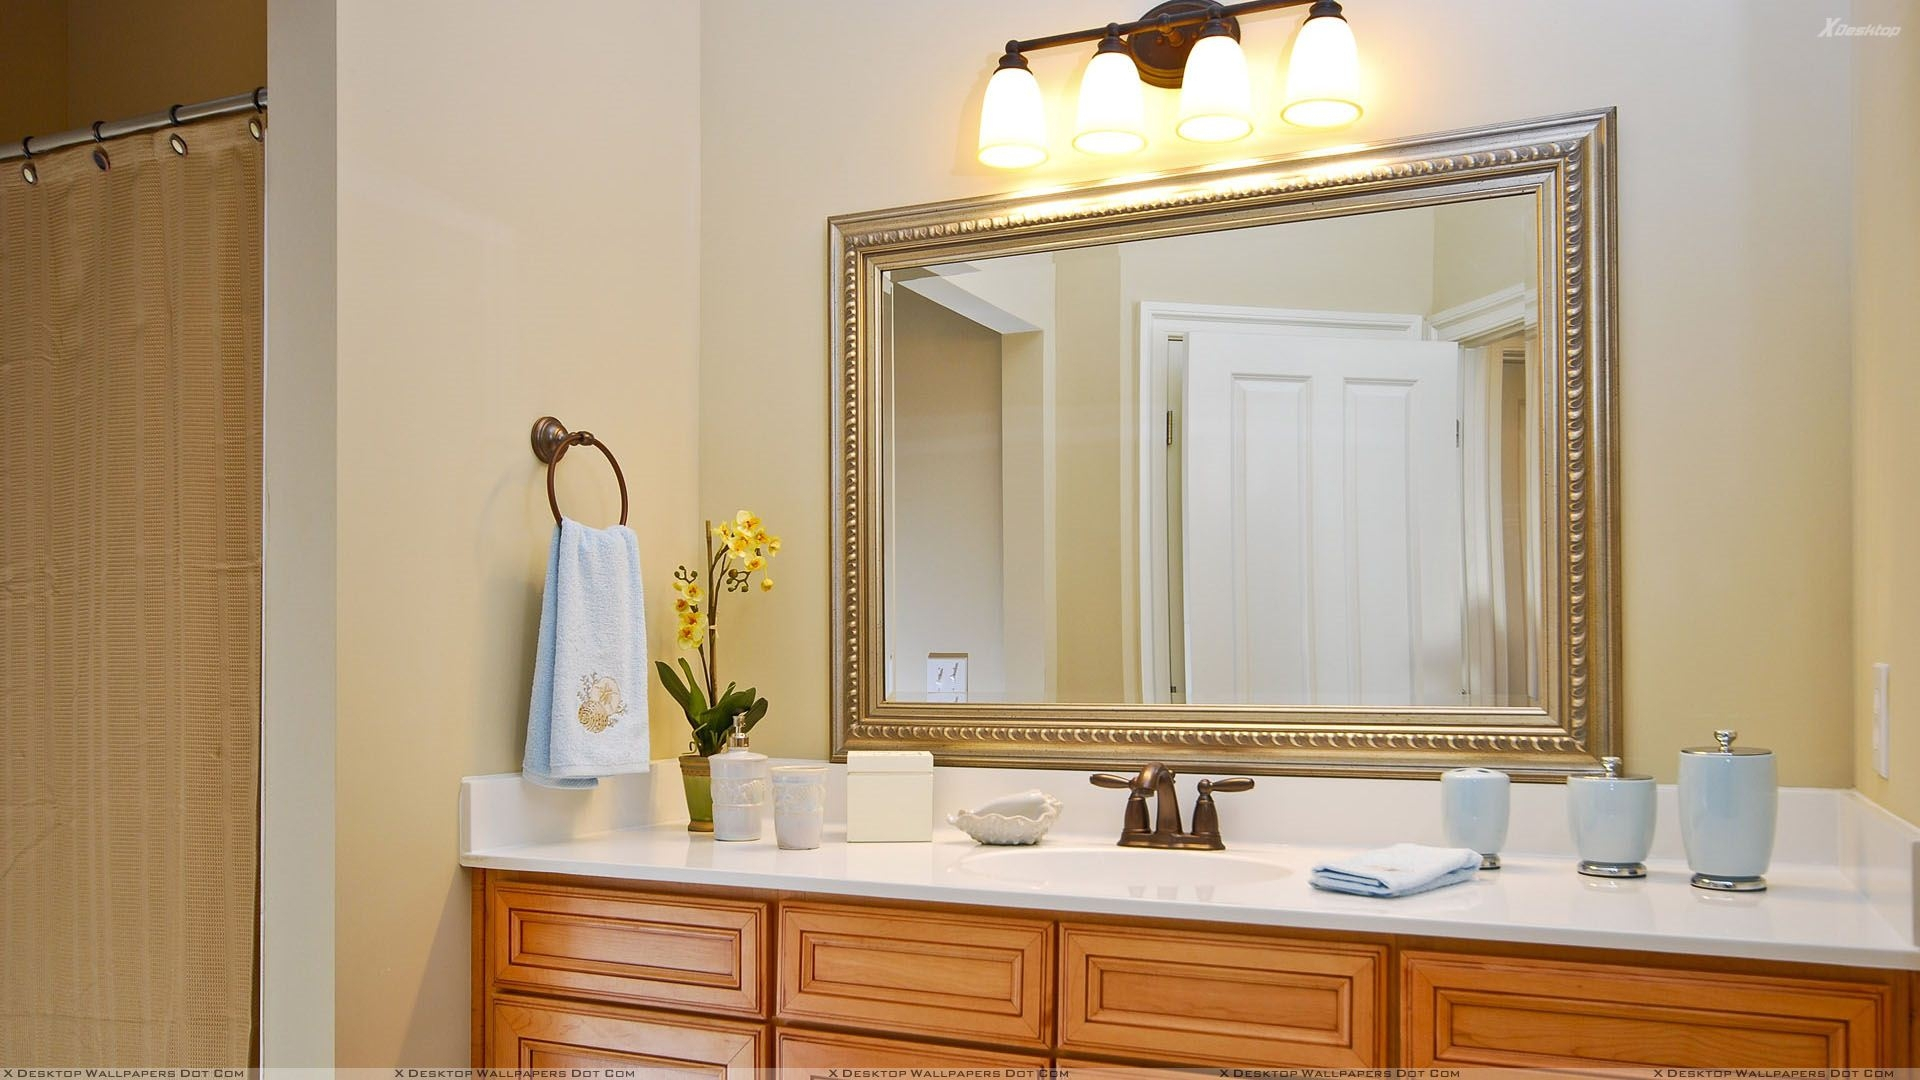 Glamorous Framed Bathroom Mirrors Houzz - Fancy Framed Bathroom Mirrors with regard to Beautiful Houzz Bathroom Mirrors